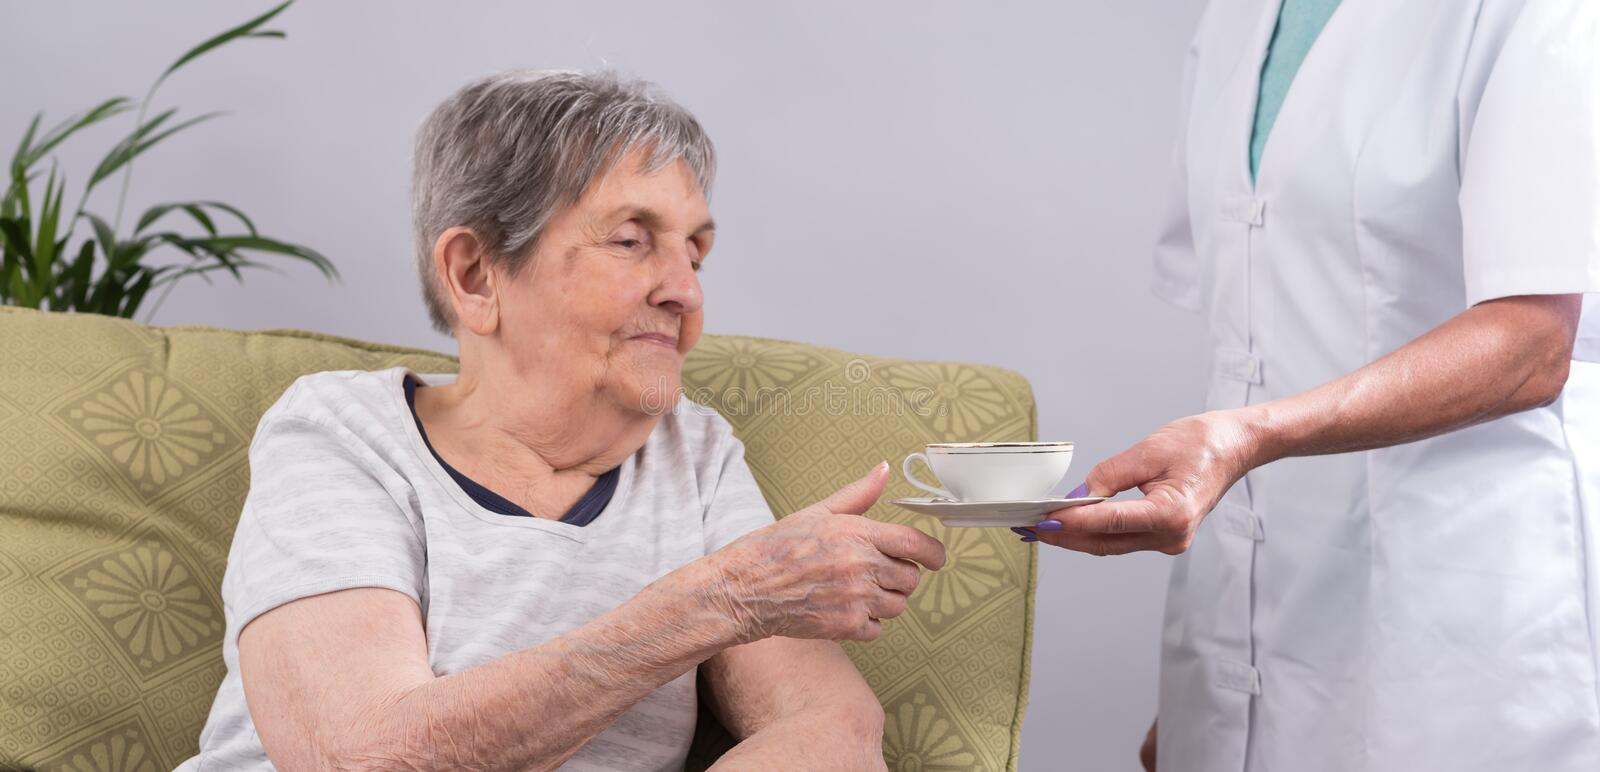 Nurse taking care of an elderly person stock images